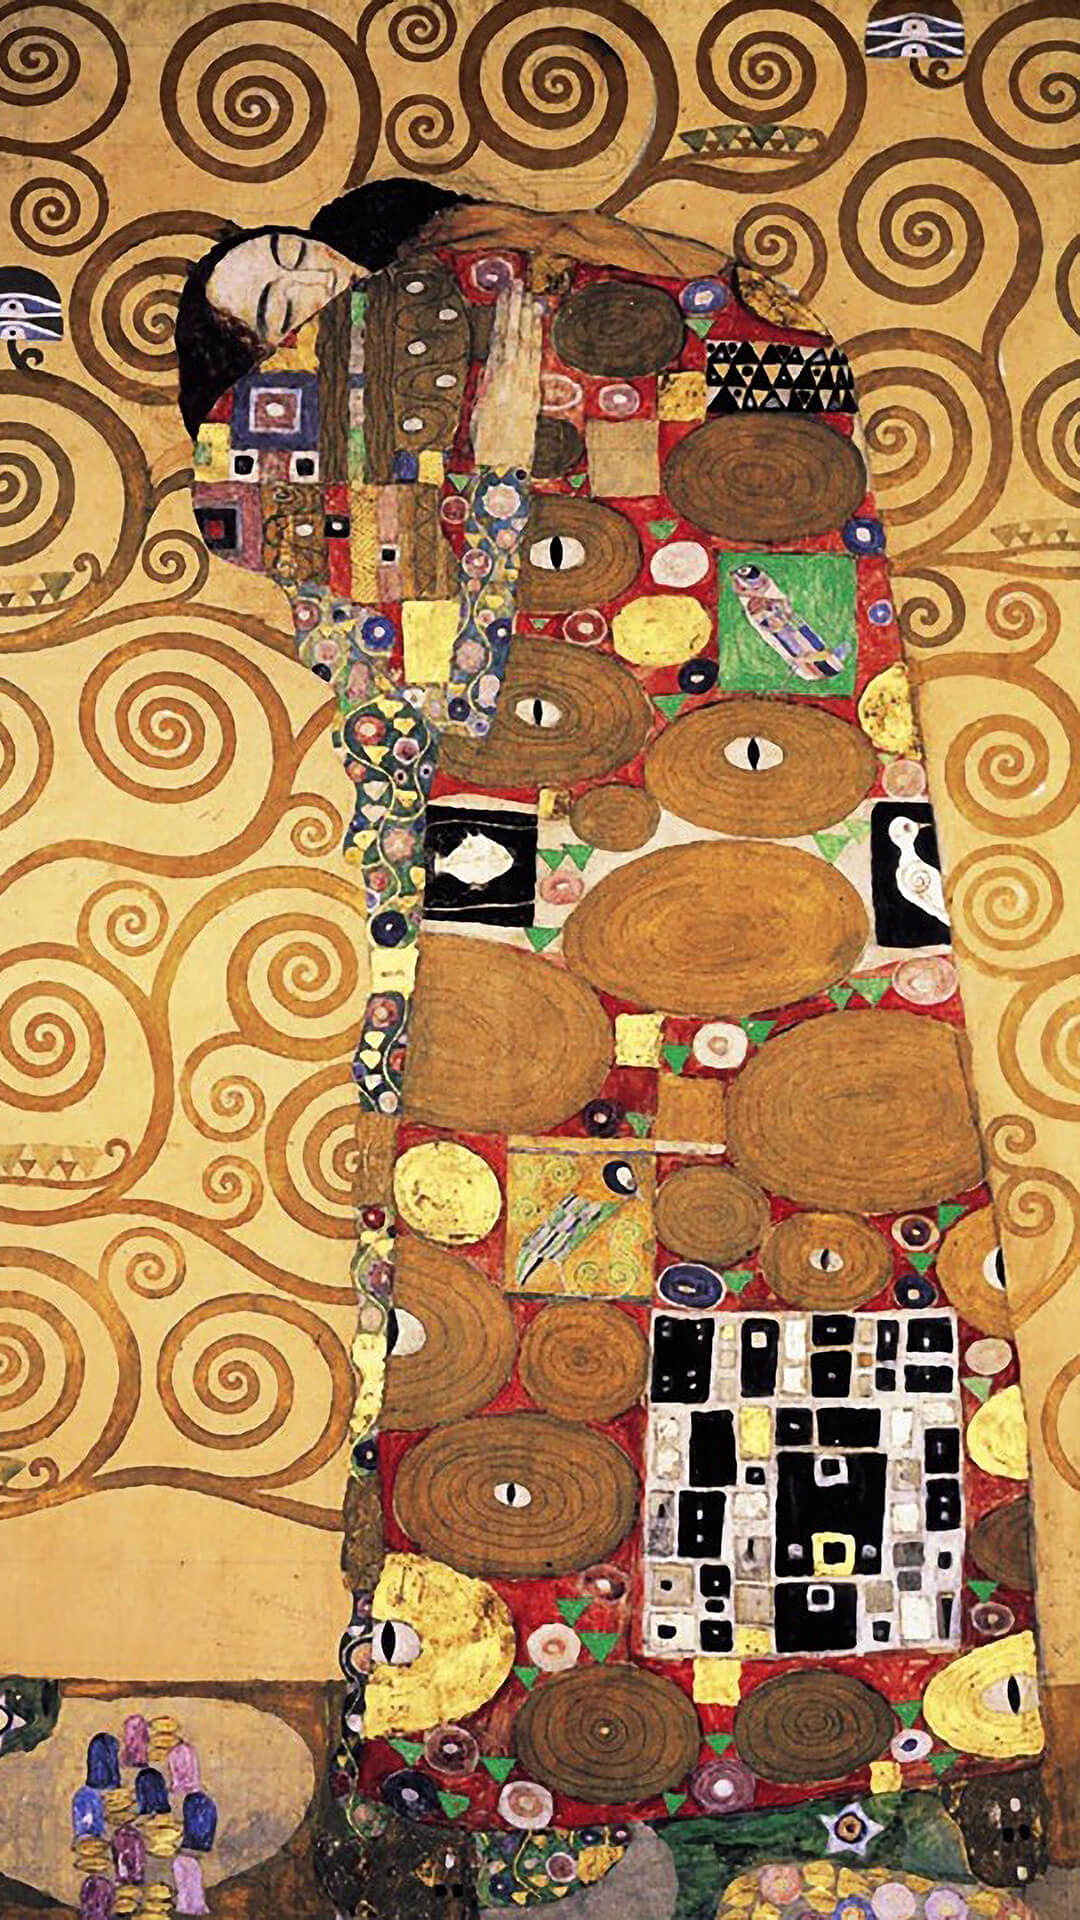 Gustav Klimt-The Tree of Life_1080x1920_3